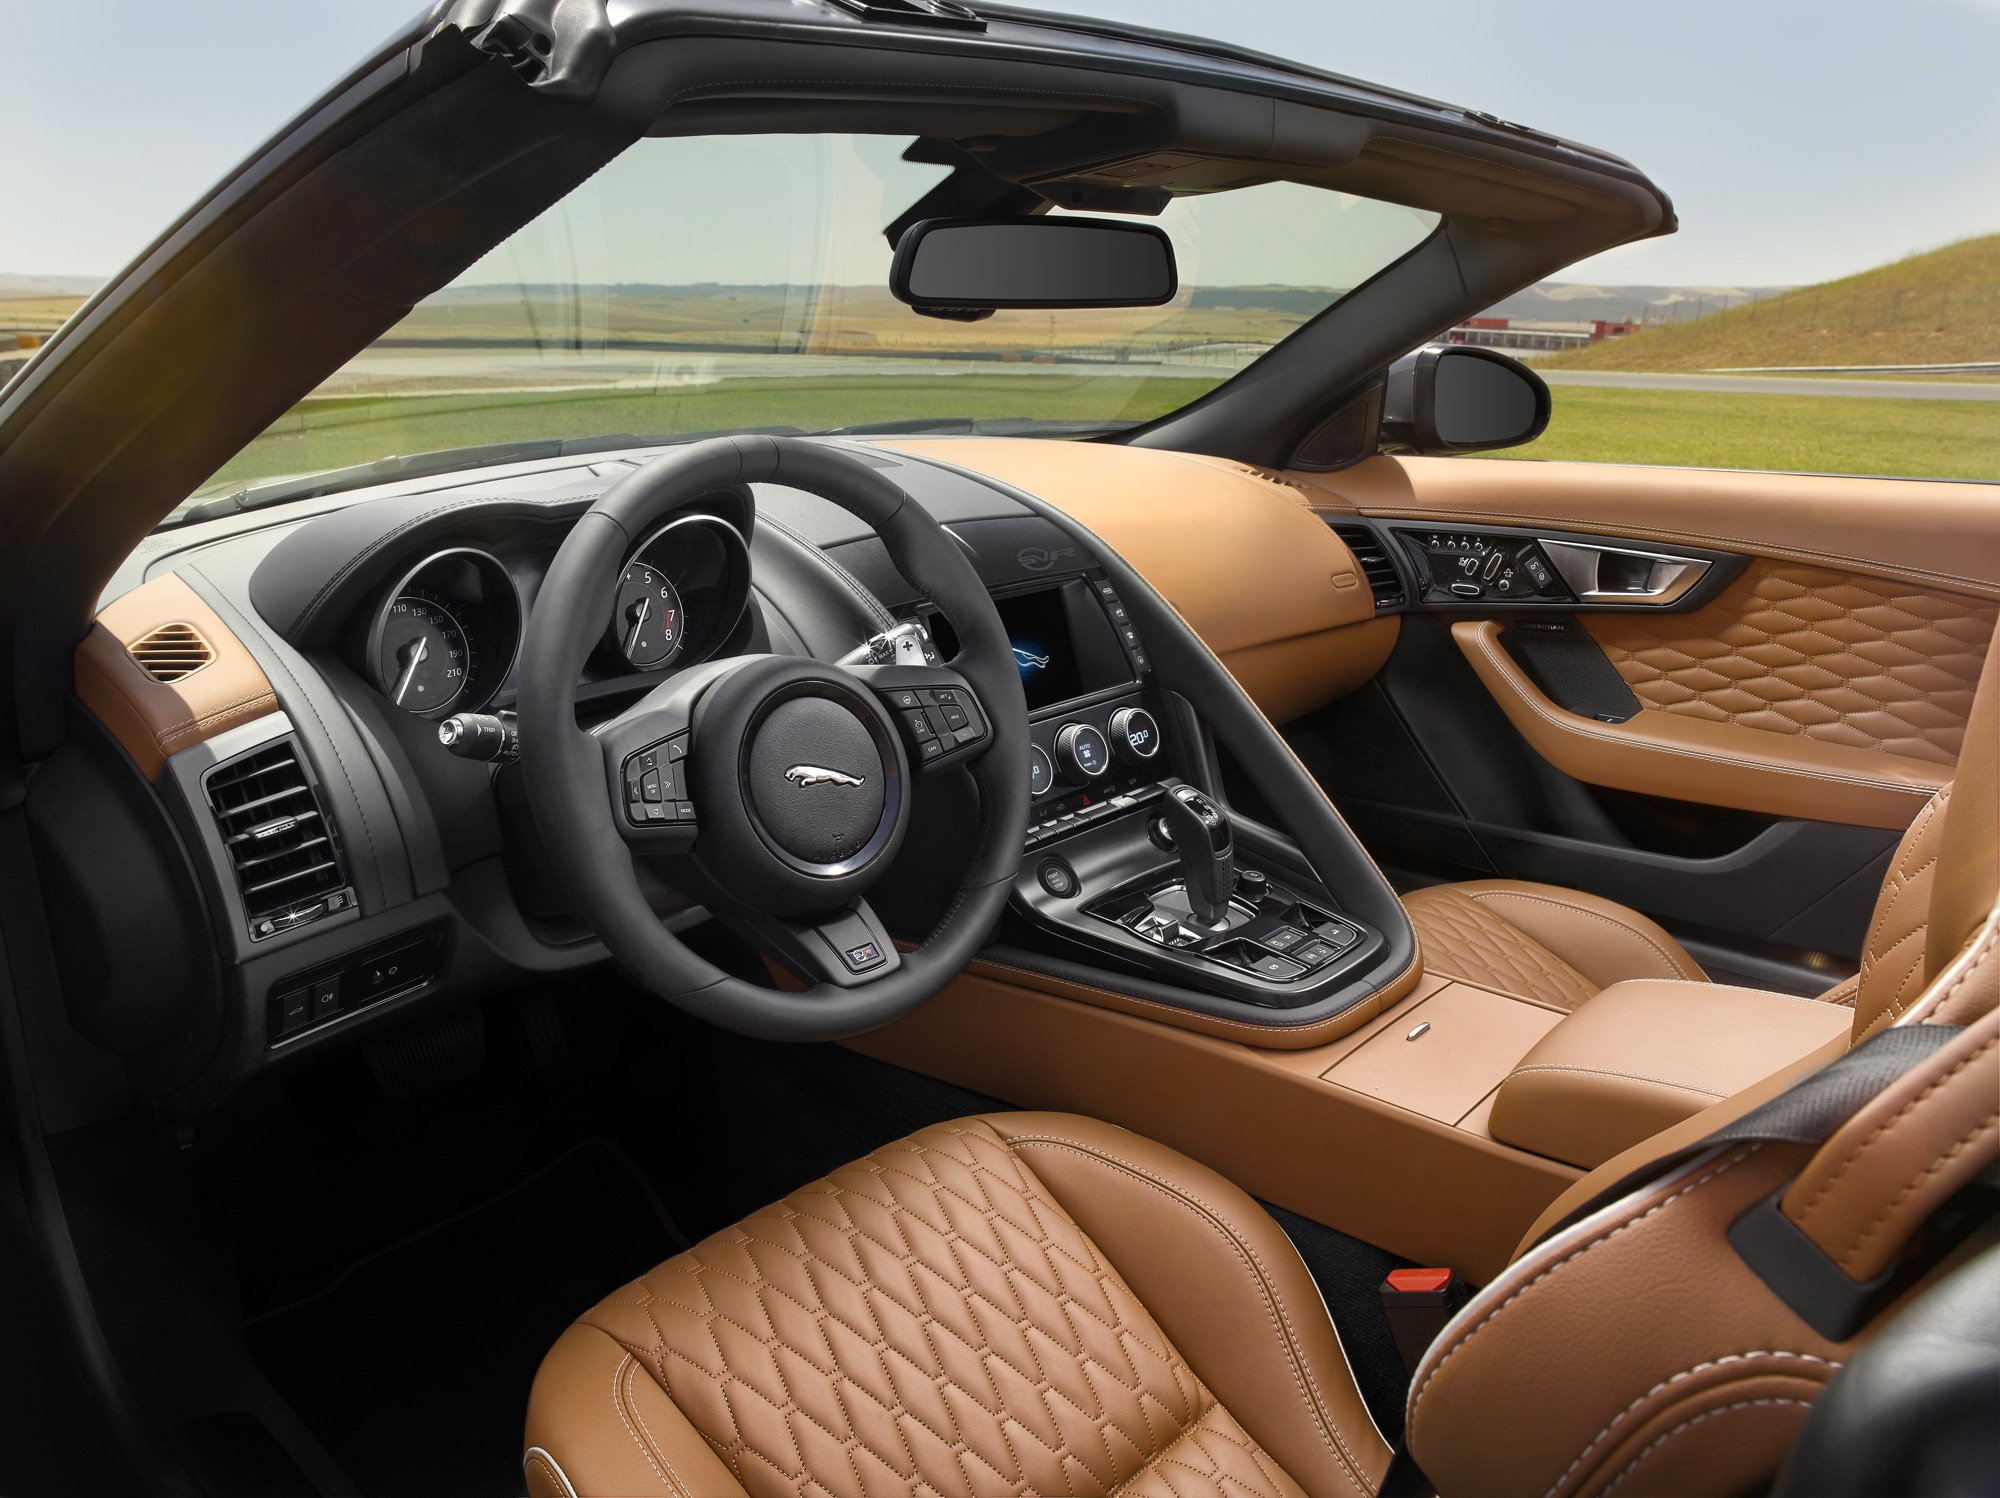 On the interior they have ditched the faux-carbon option and now comes with the real thing